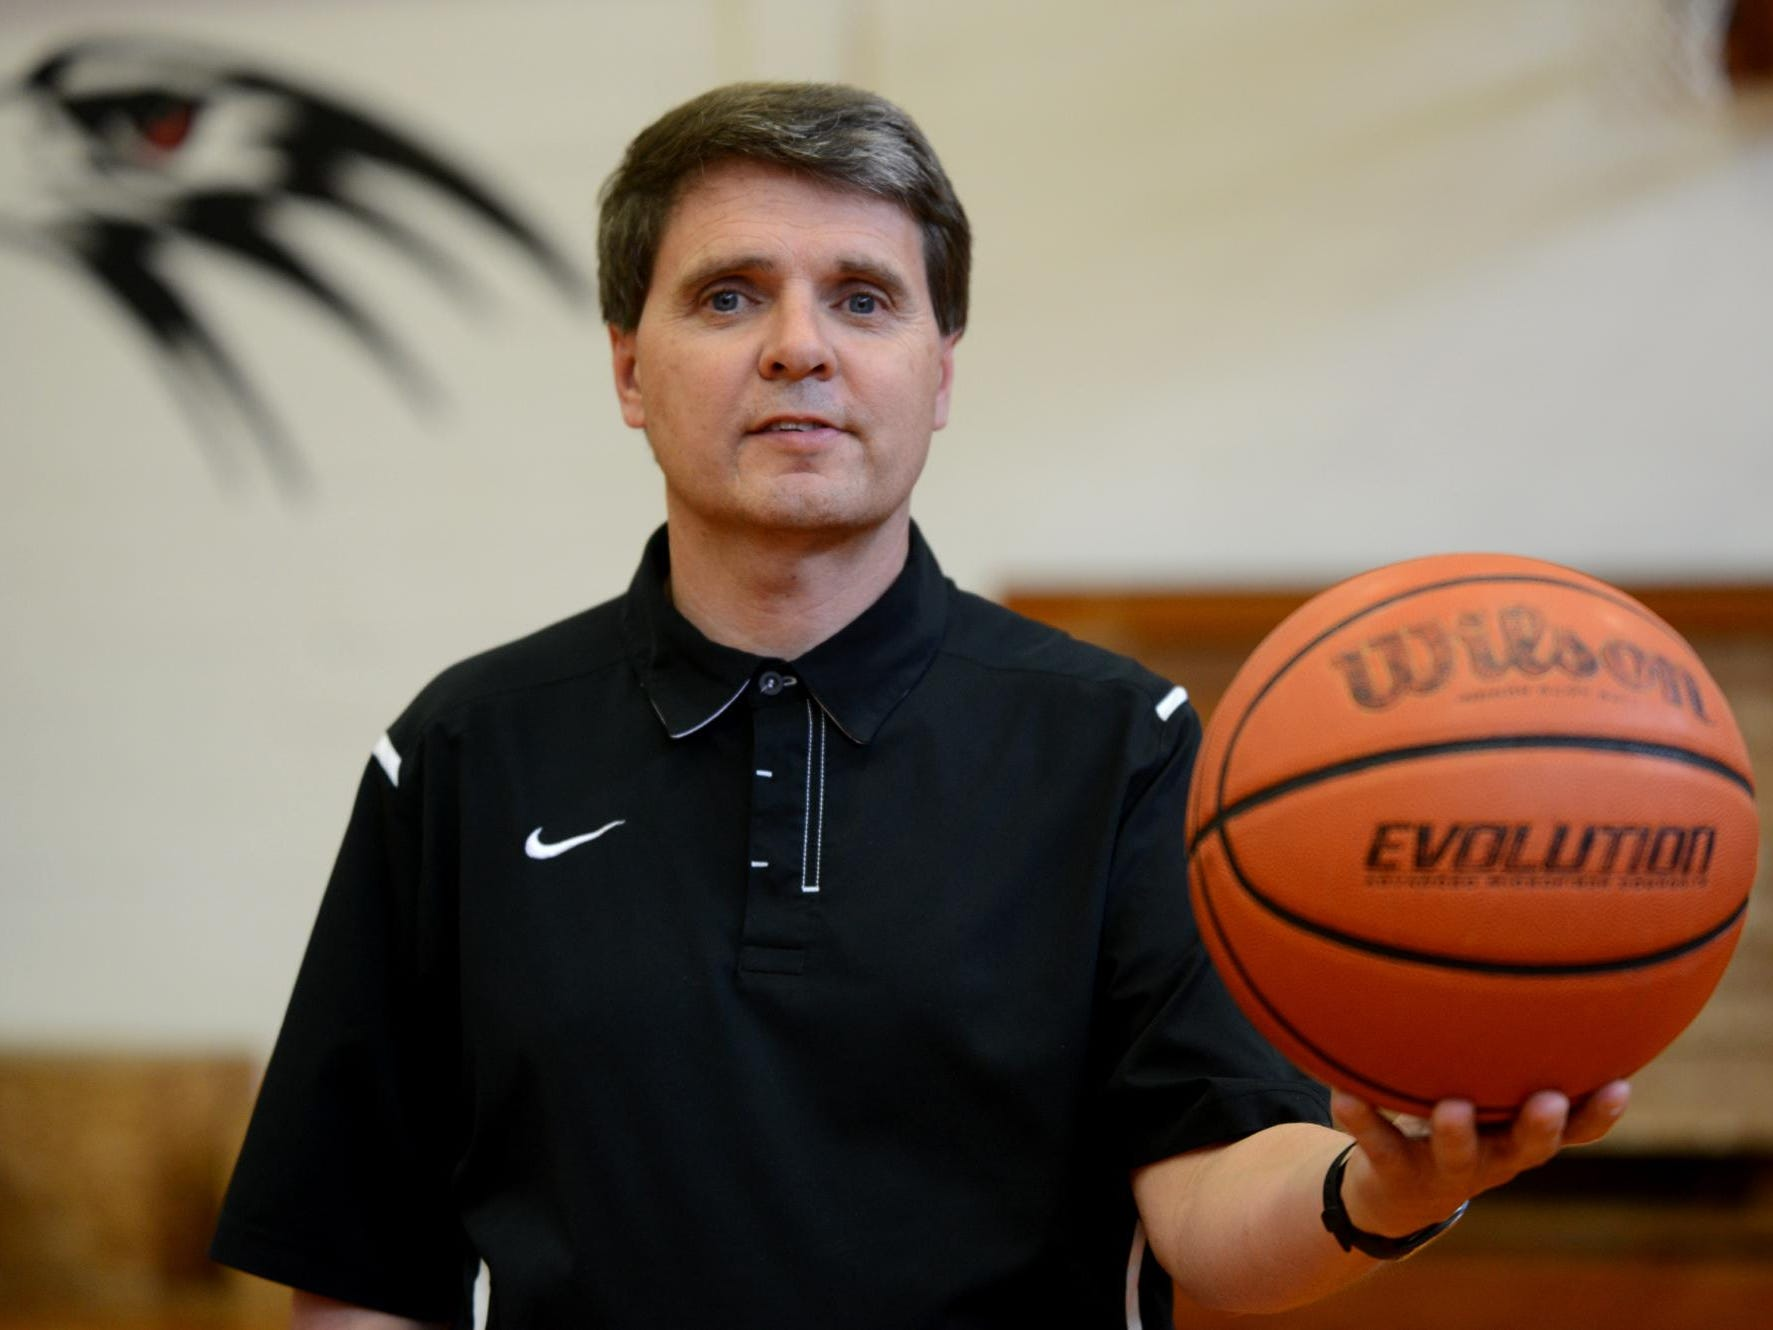 Steve Patterson was named All-West Tennessee Girls' Basketball Coach of the Year in 2013.